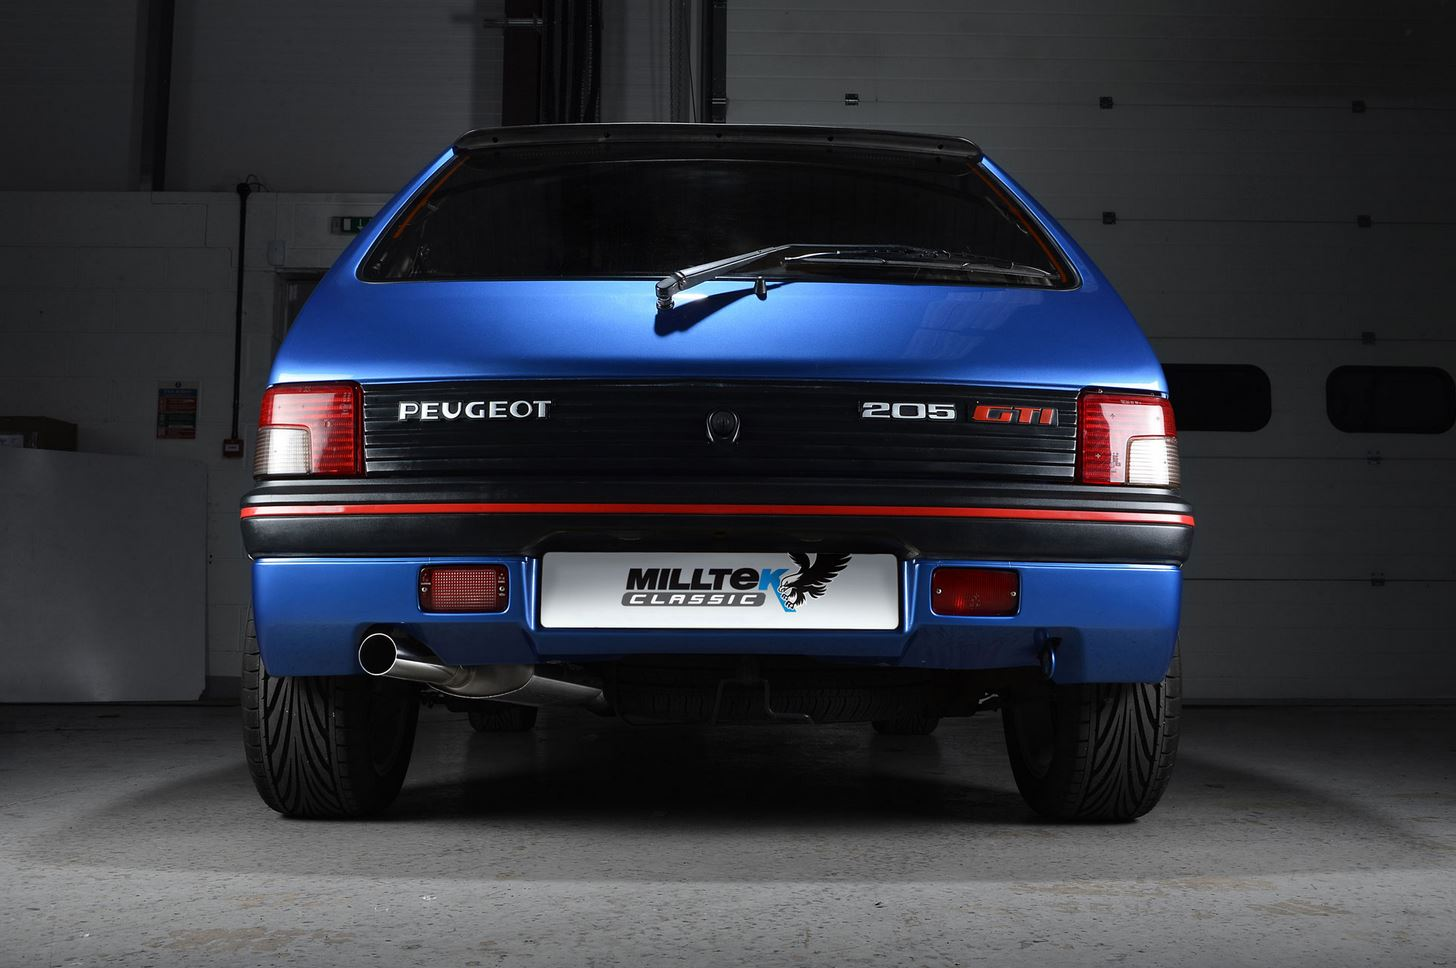 Peugeot_205_GTI_exhaust_by_Milltek_Classic_04